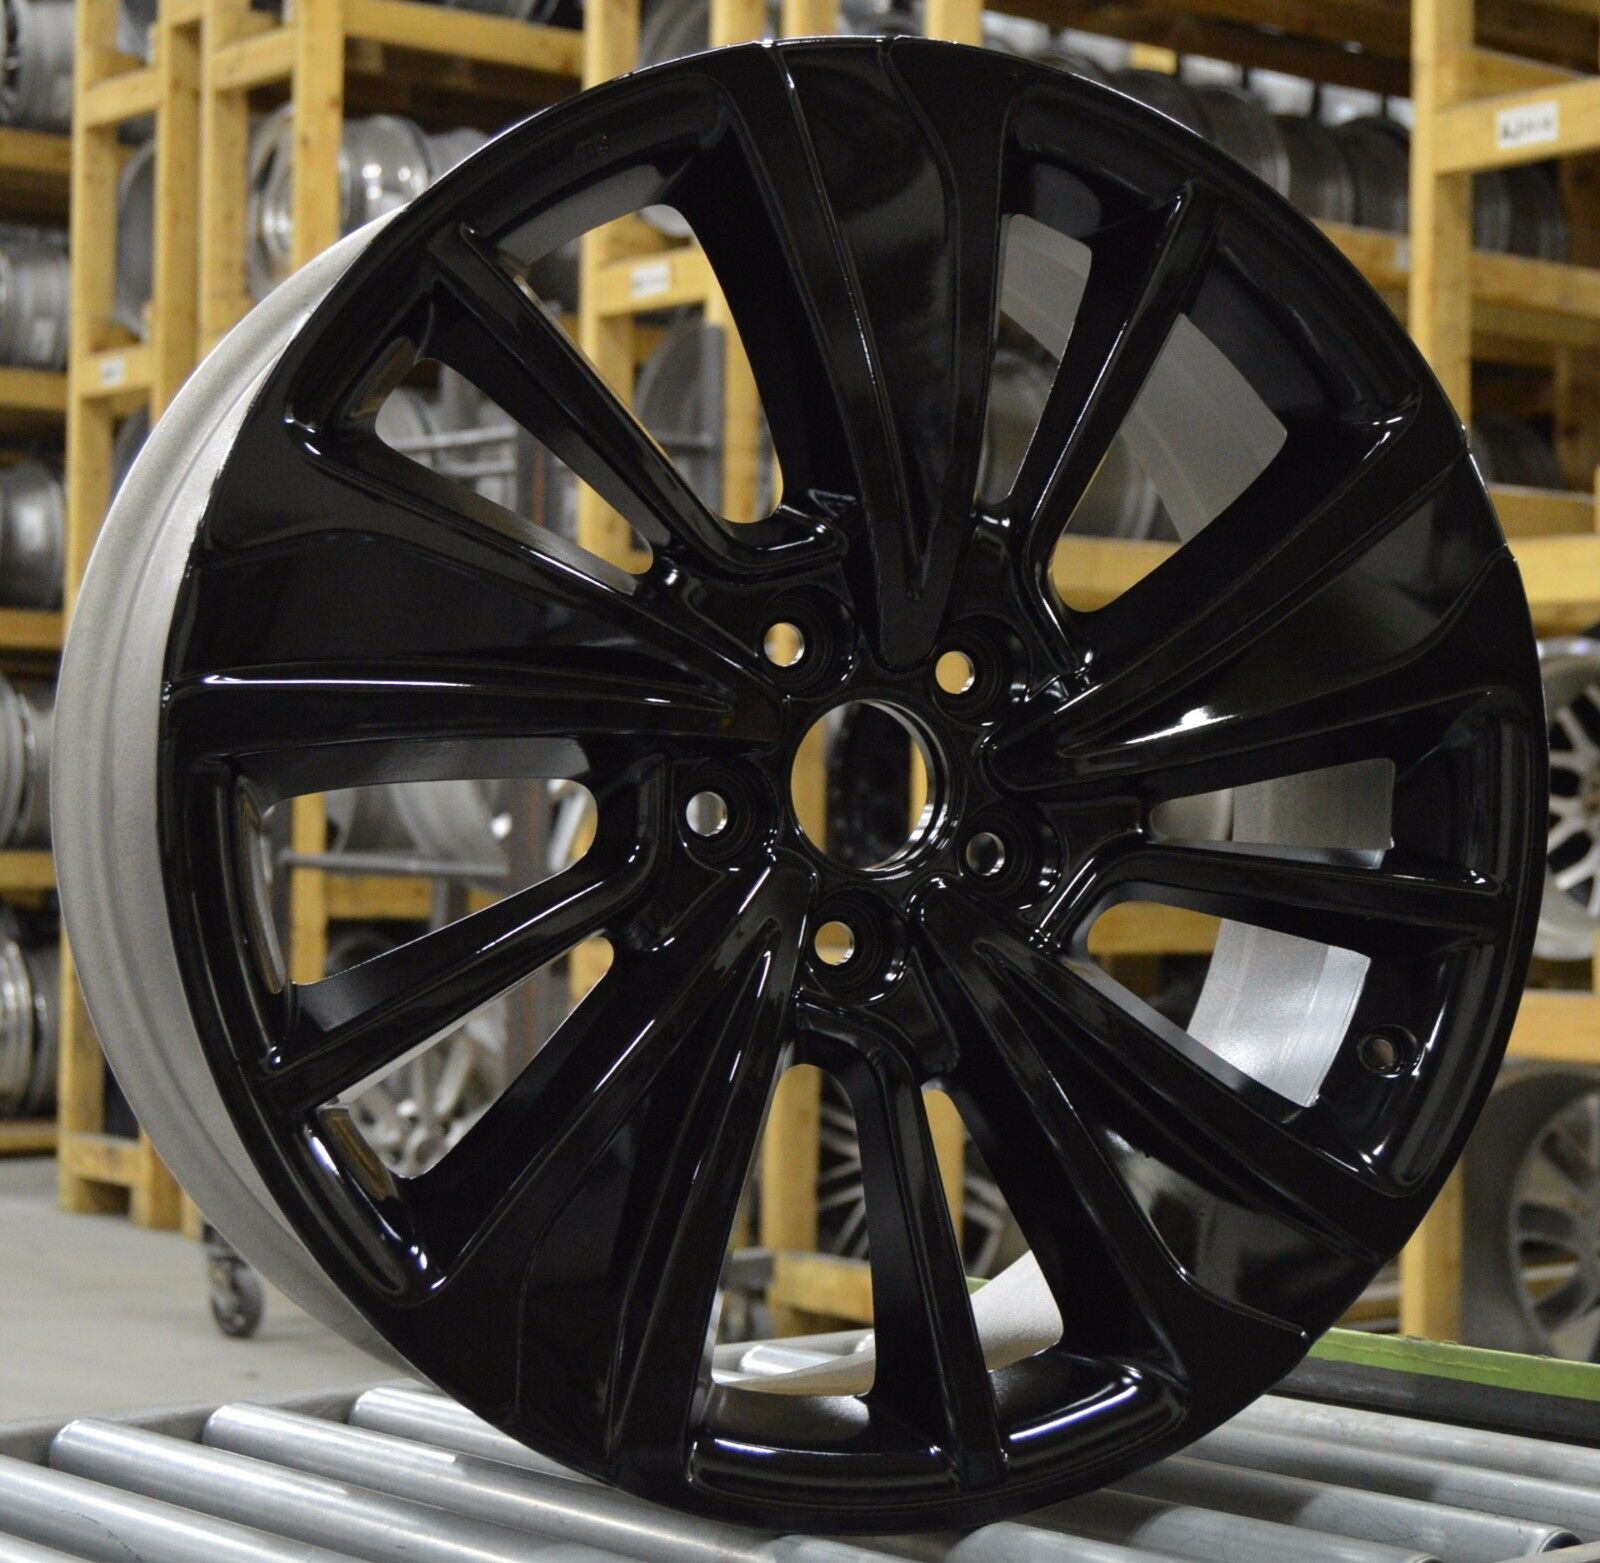 Used Acura MDX Wheels Tires And Related Parts For Sale - Acura mdx oem wheels